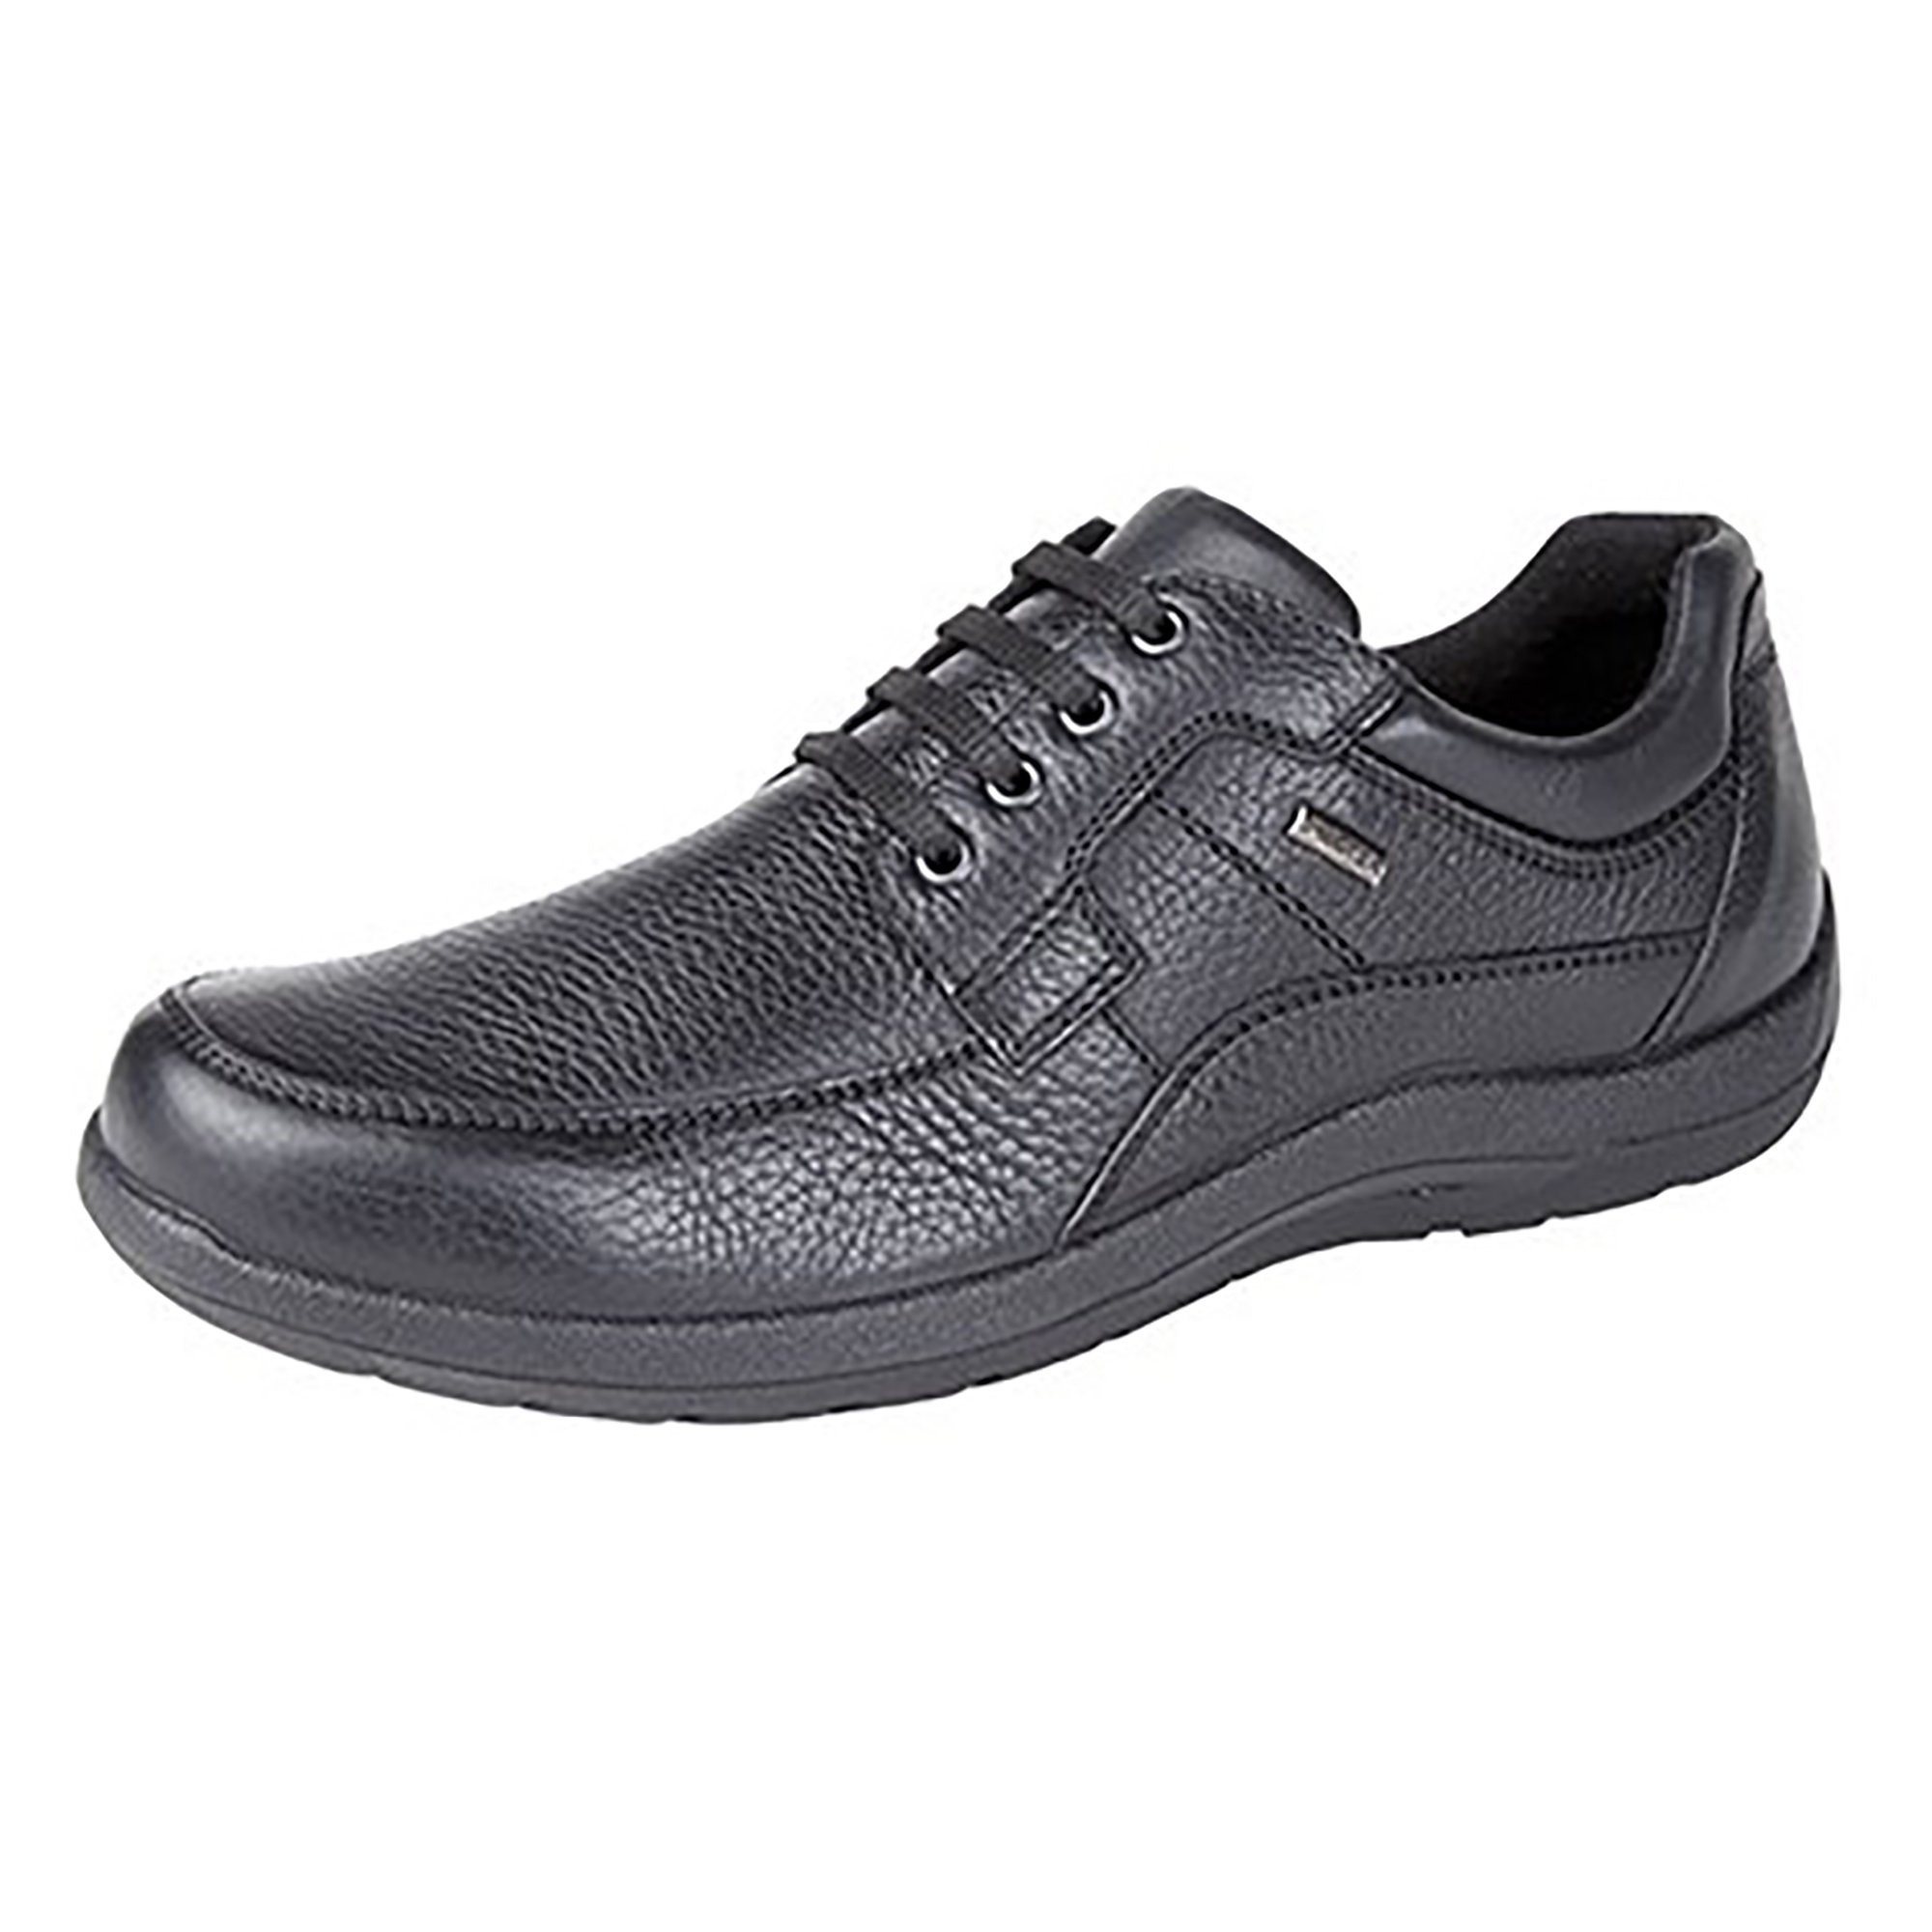 Imac Mens Waterproof Lace Up Casual Shoes (9 US) (Black)